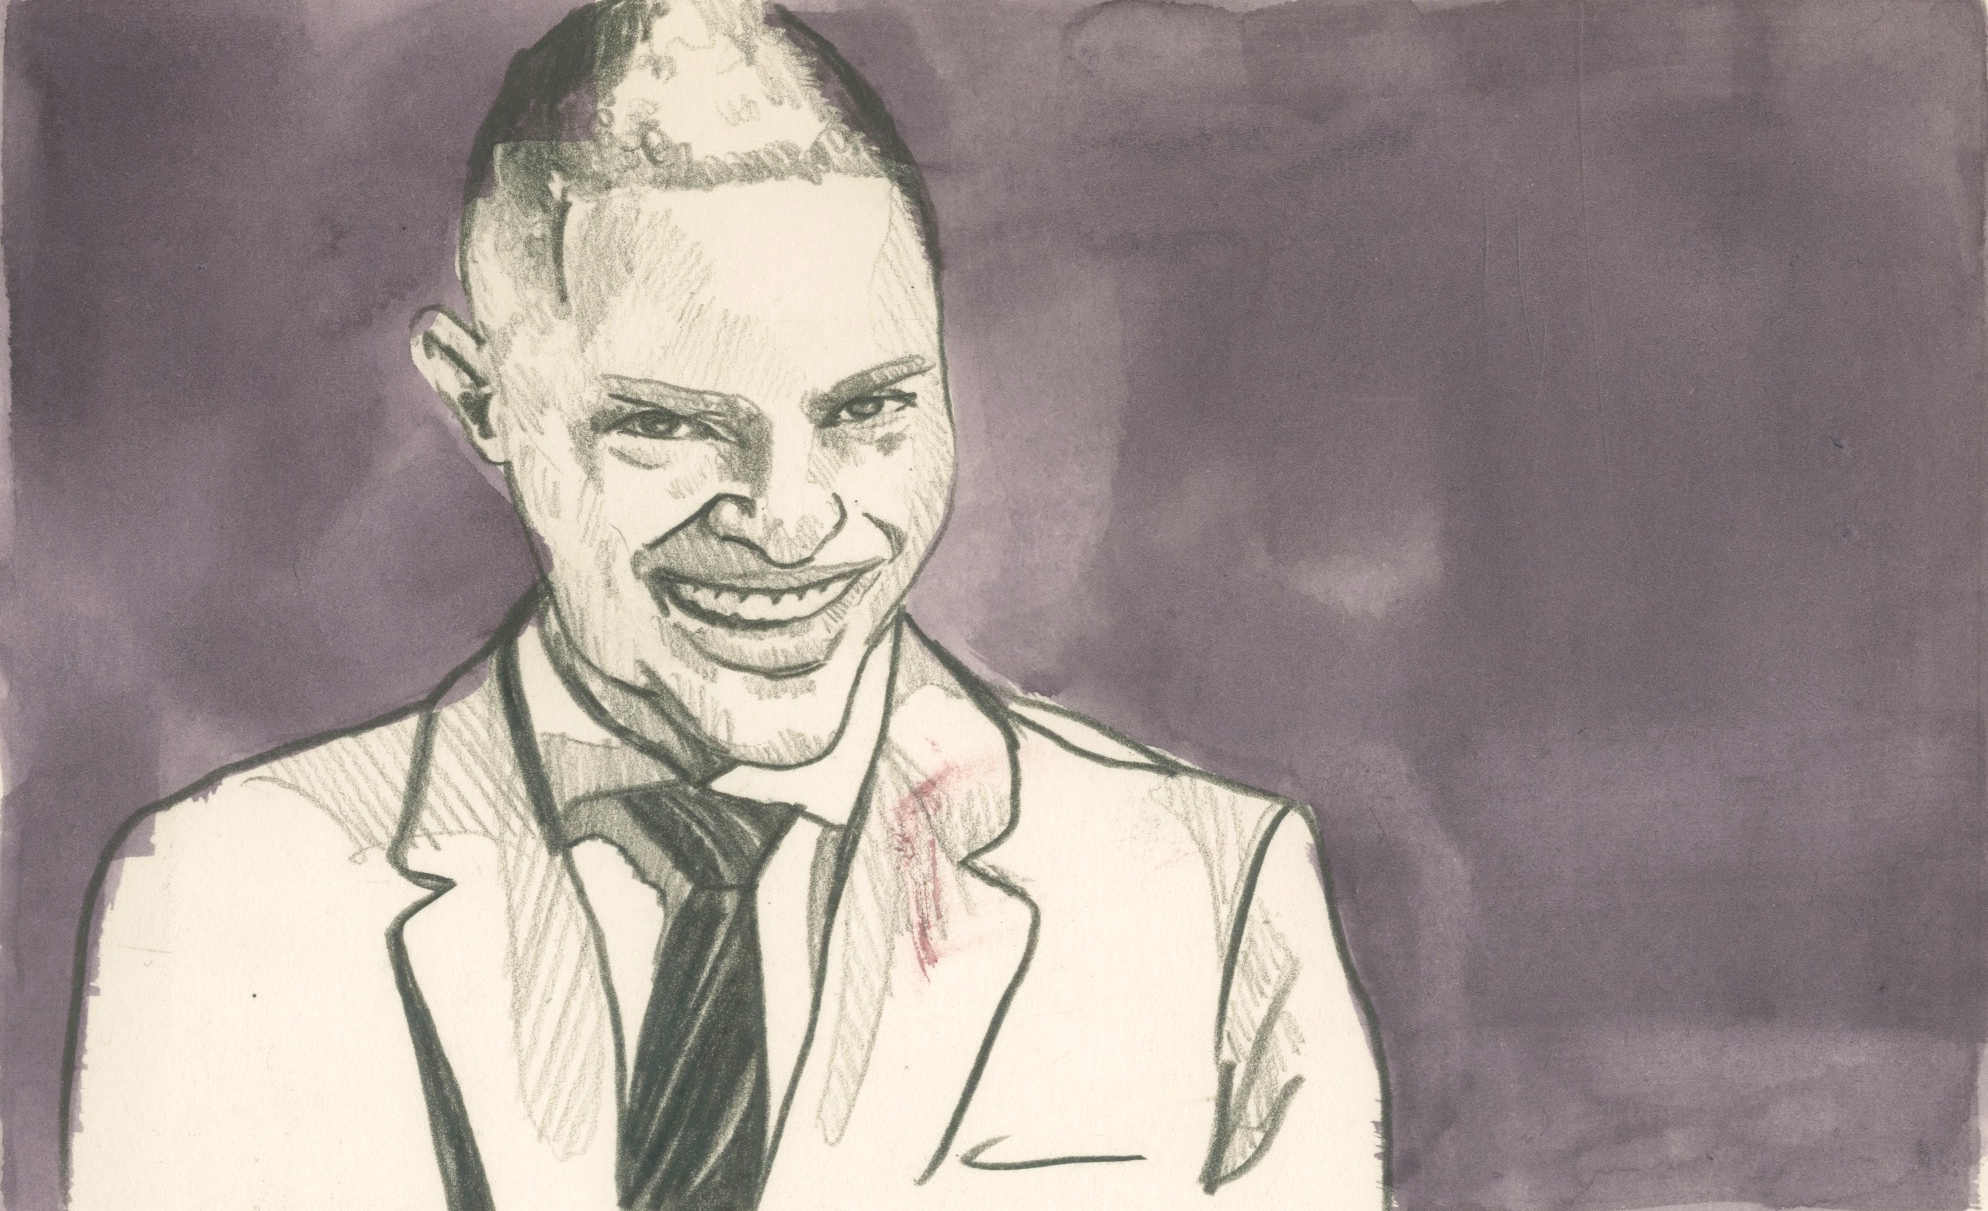 01/04/15 South African comedian Trevor Noah has been announced as the replacement for Jon Stewart as host of one of America's most celebrated news programmes – The Daily Show, produced by Comedy Central